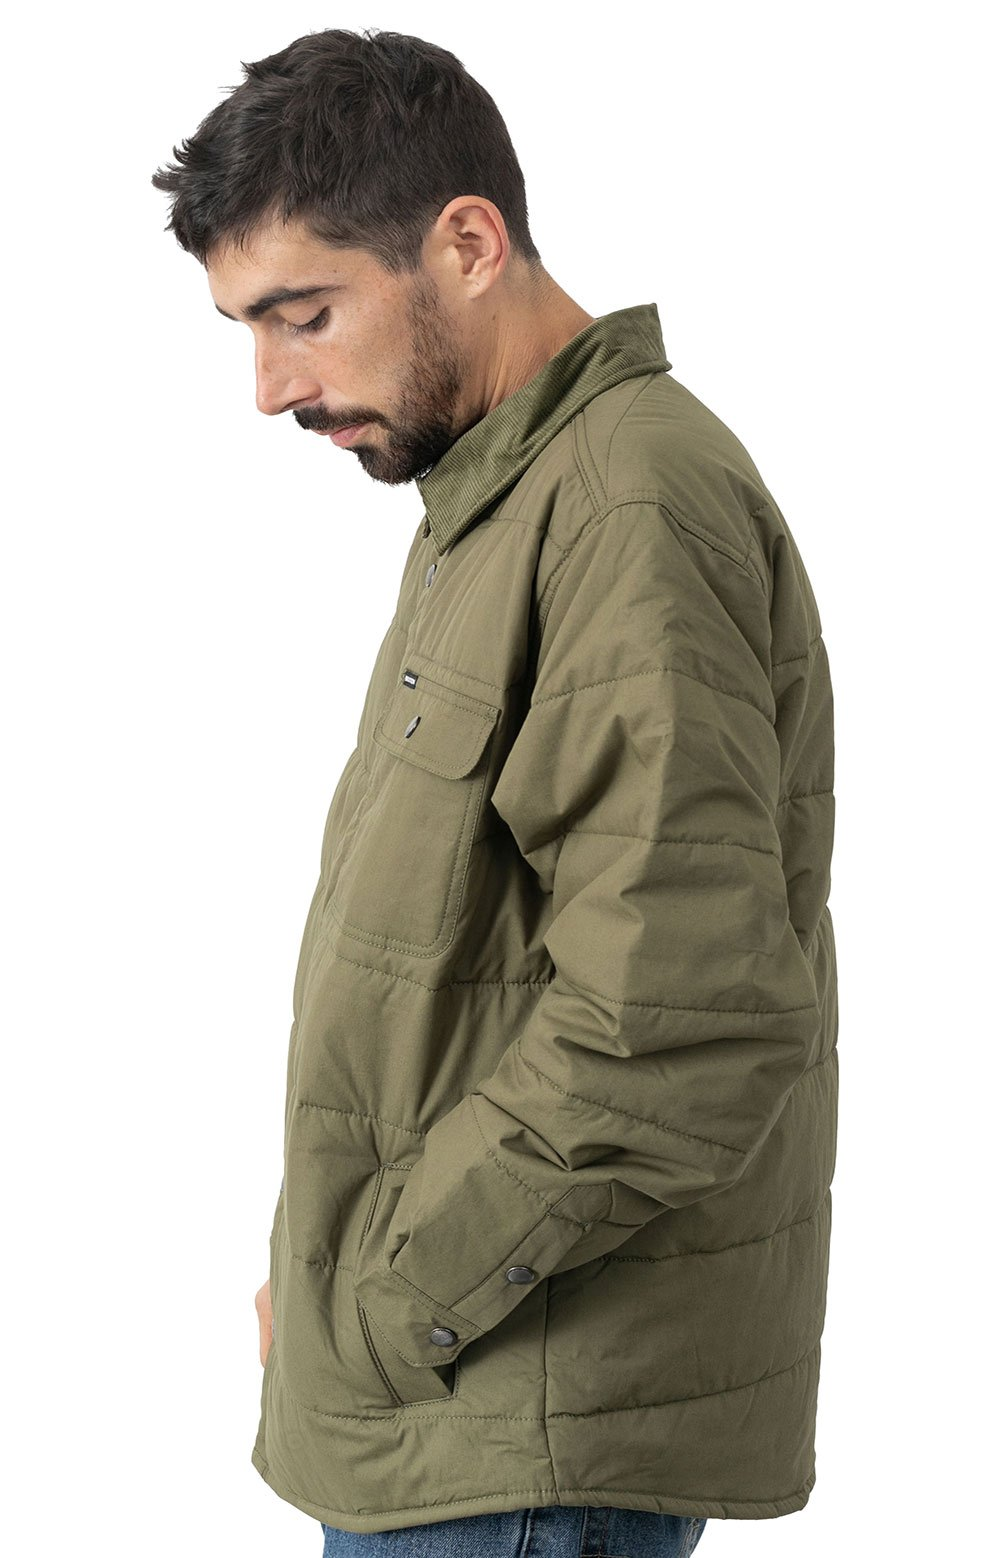 Cass Jacket - Military Olive 2